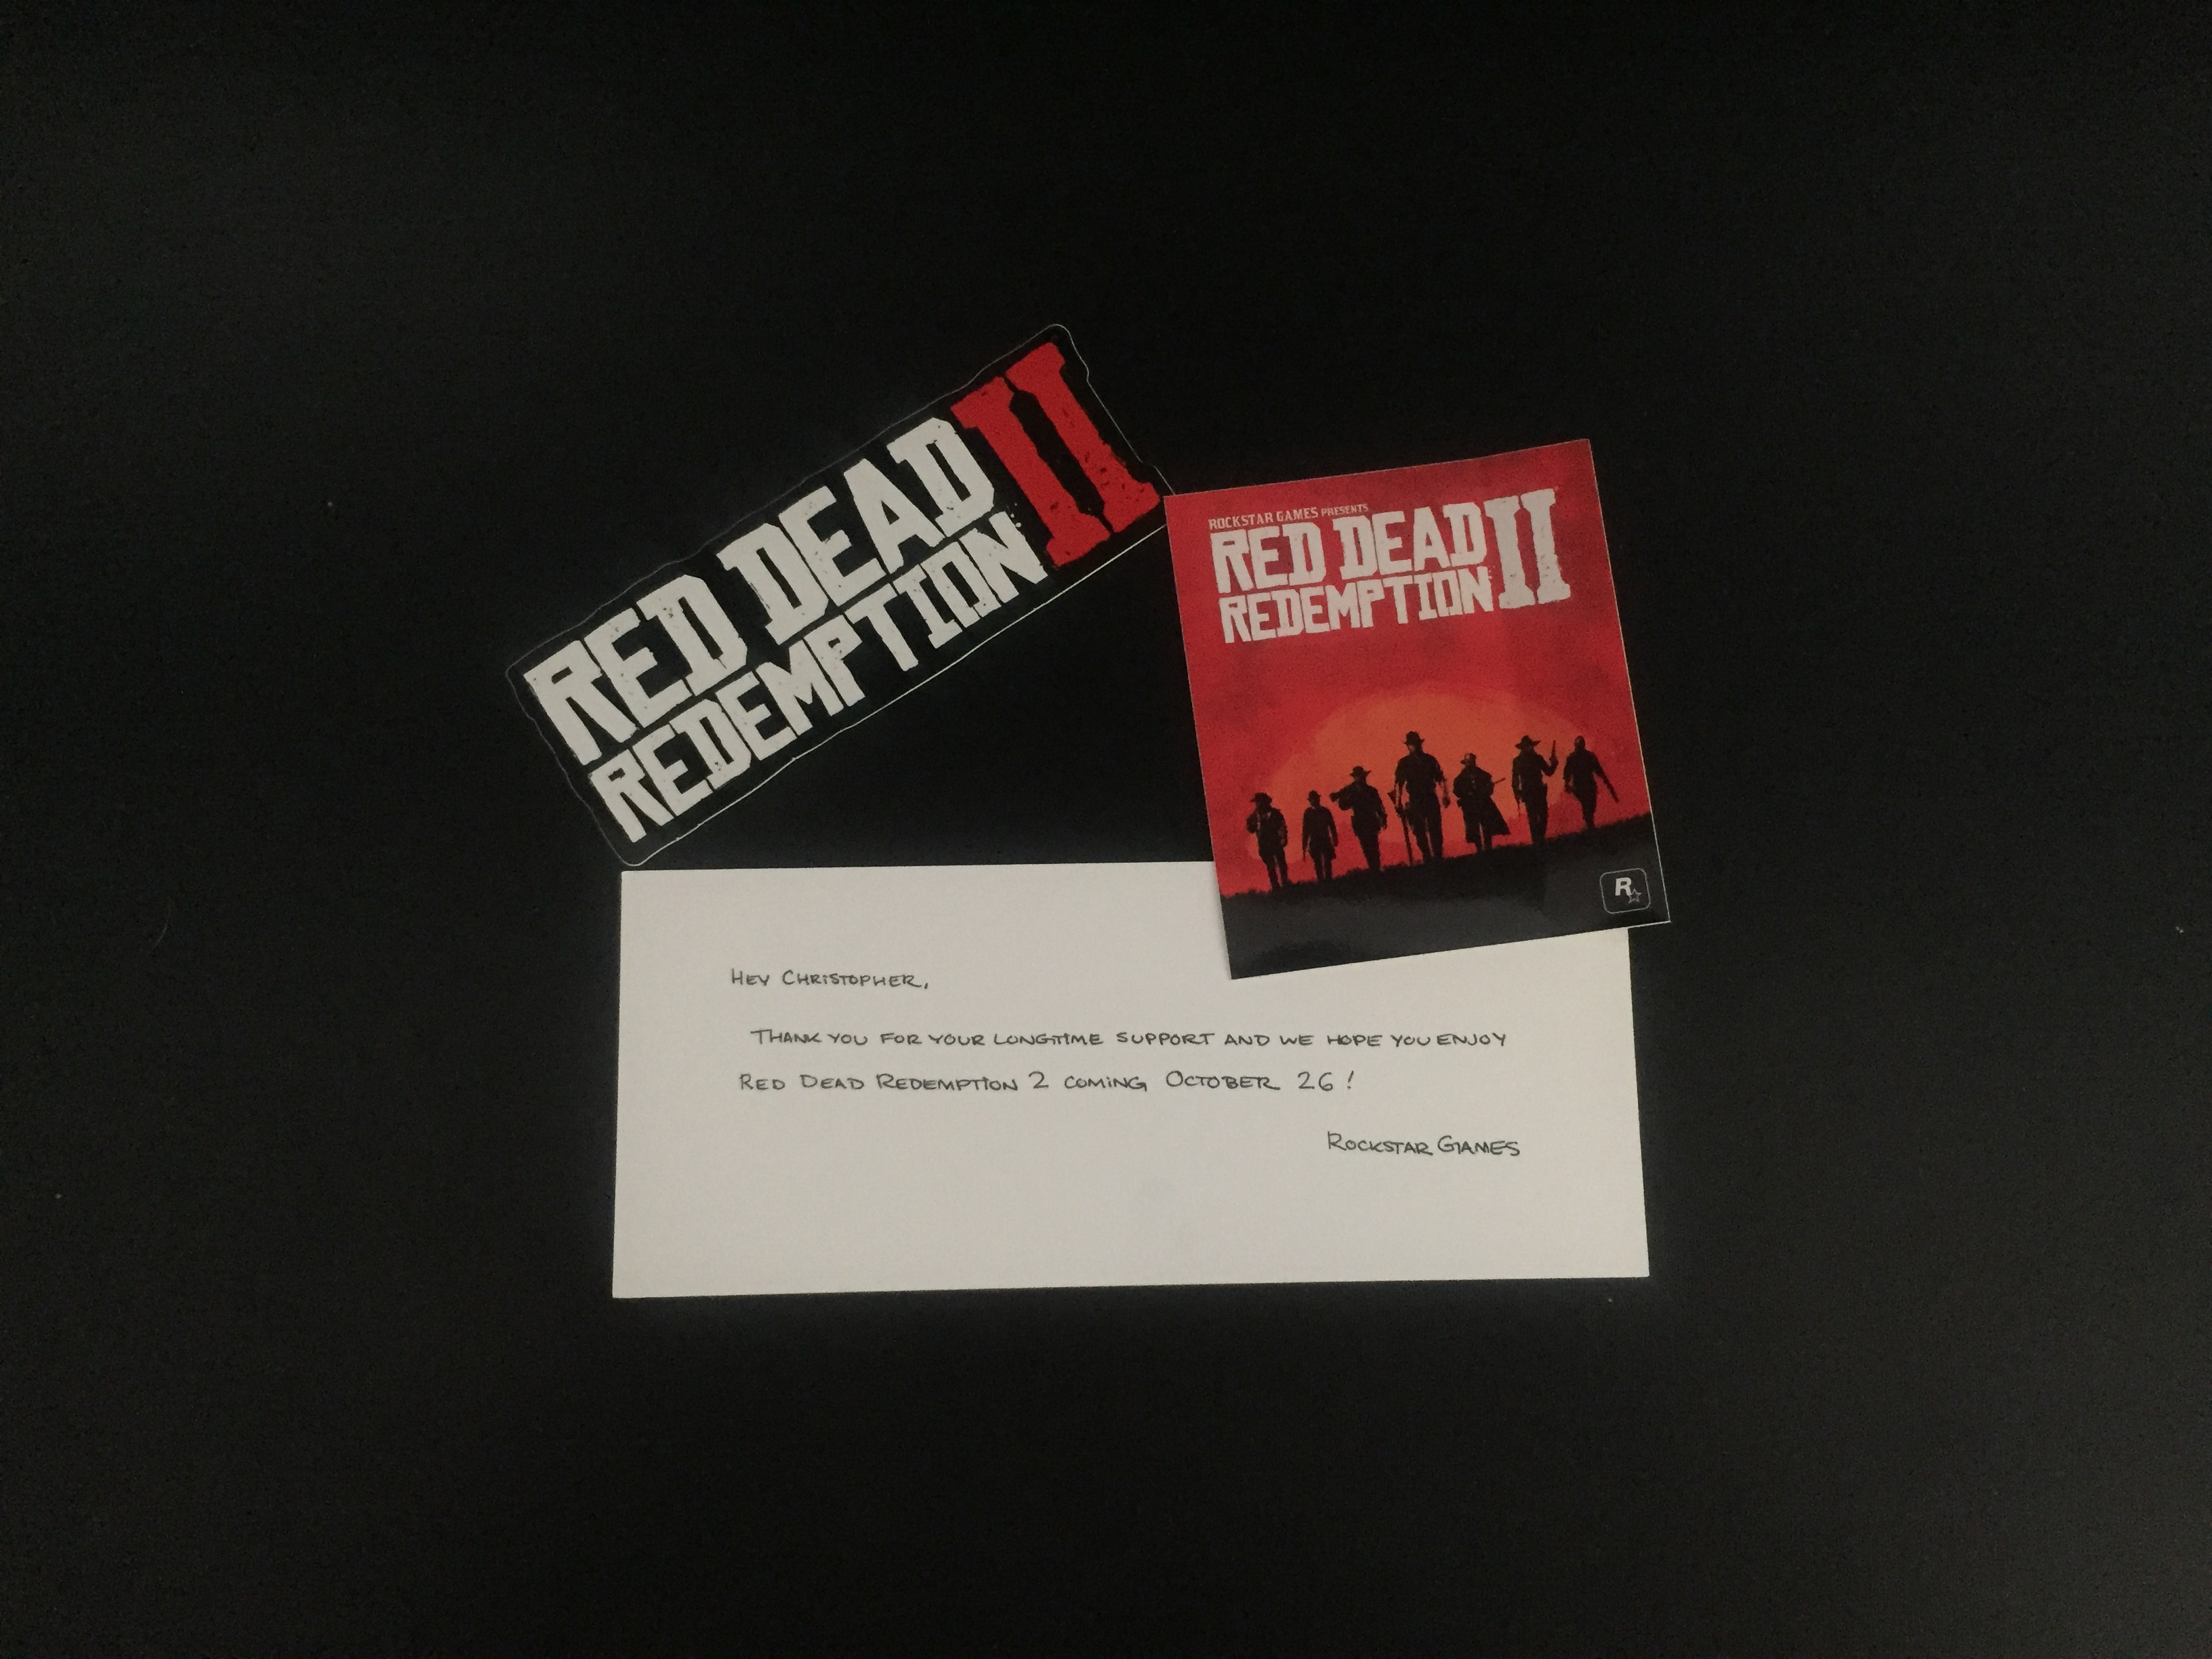 Colis Rockstar Games - Red Dead Redemption II - Stickers et Message